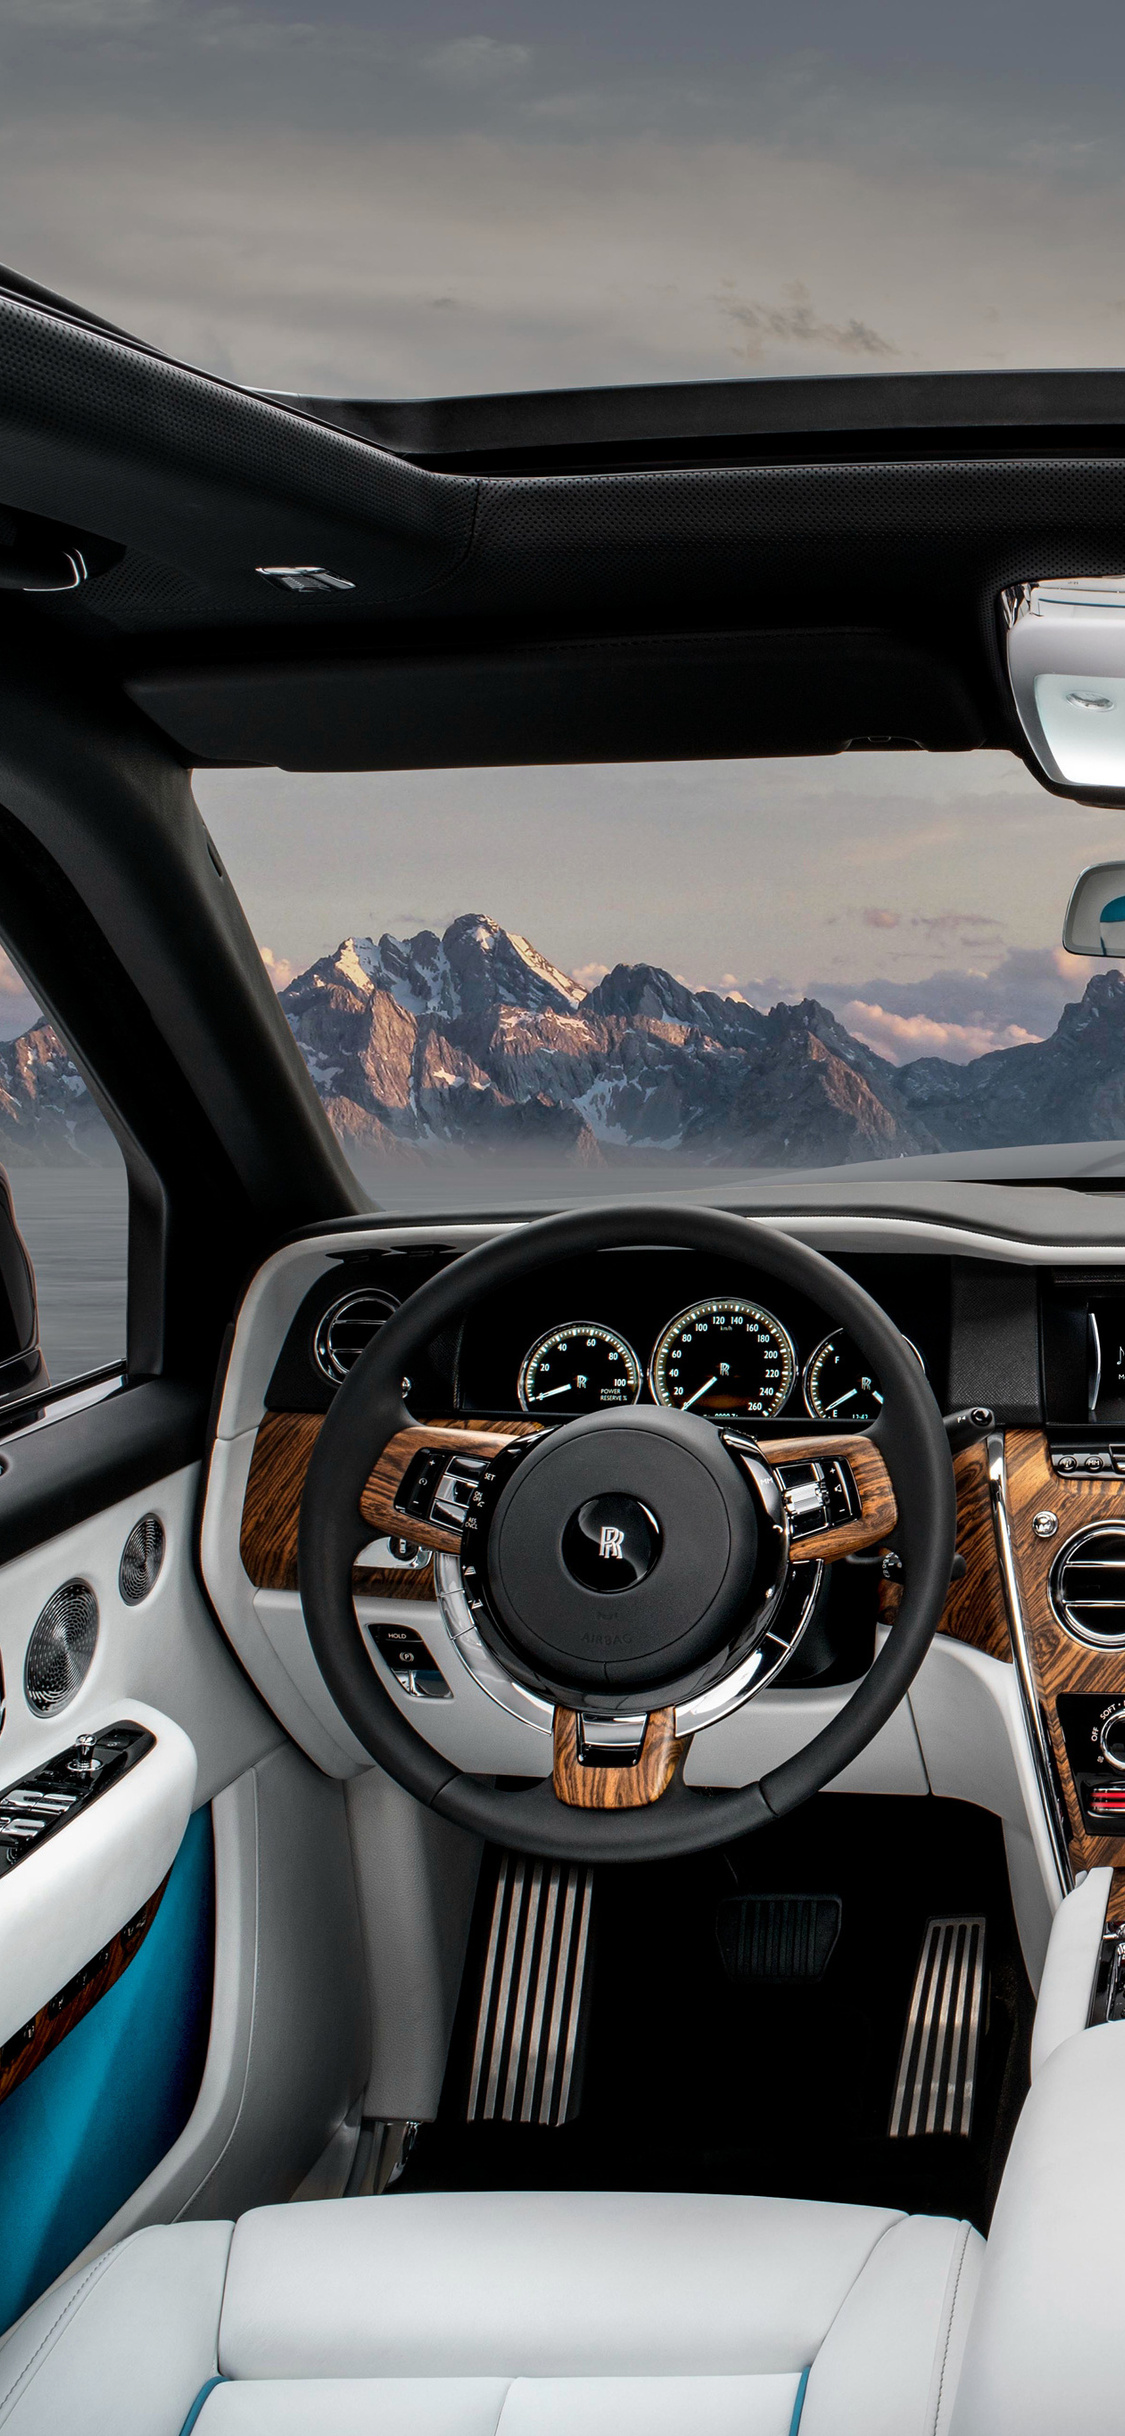 1125x2436 Rolls Royce Cullinan Interior Iphone Xs Iphone 10 Iphone X Hd 4k Wallpapers Images Backgrounds Photos And Pictures